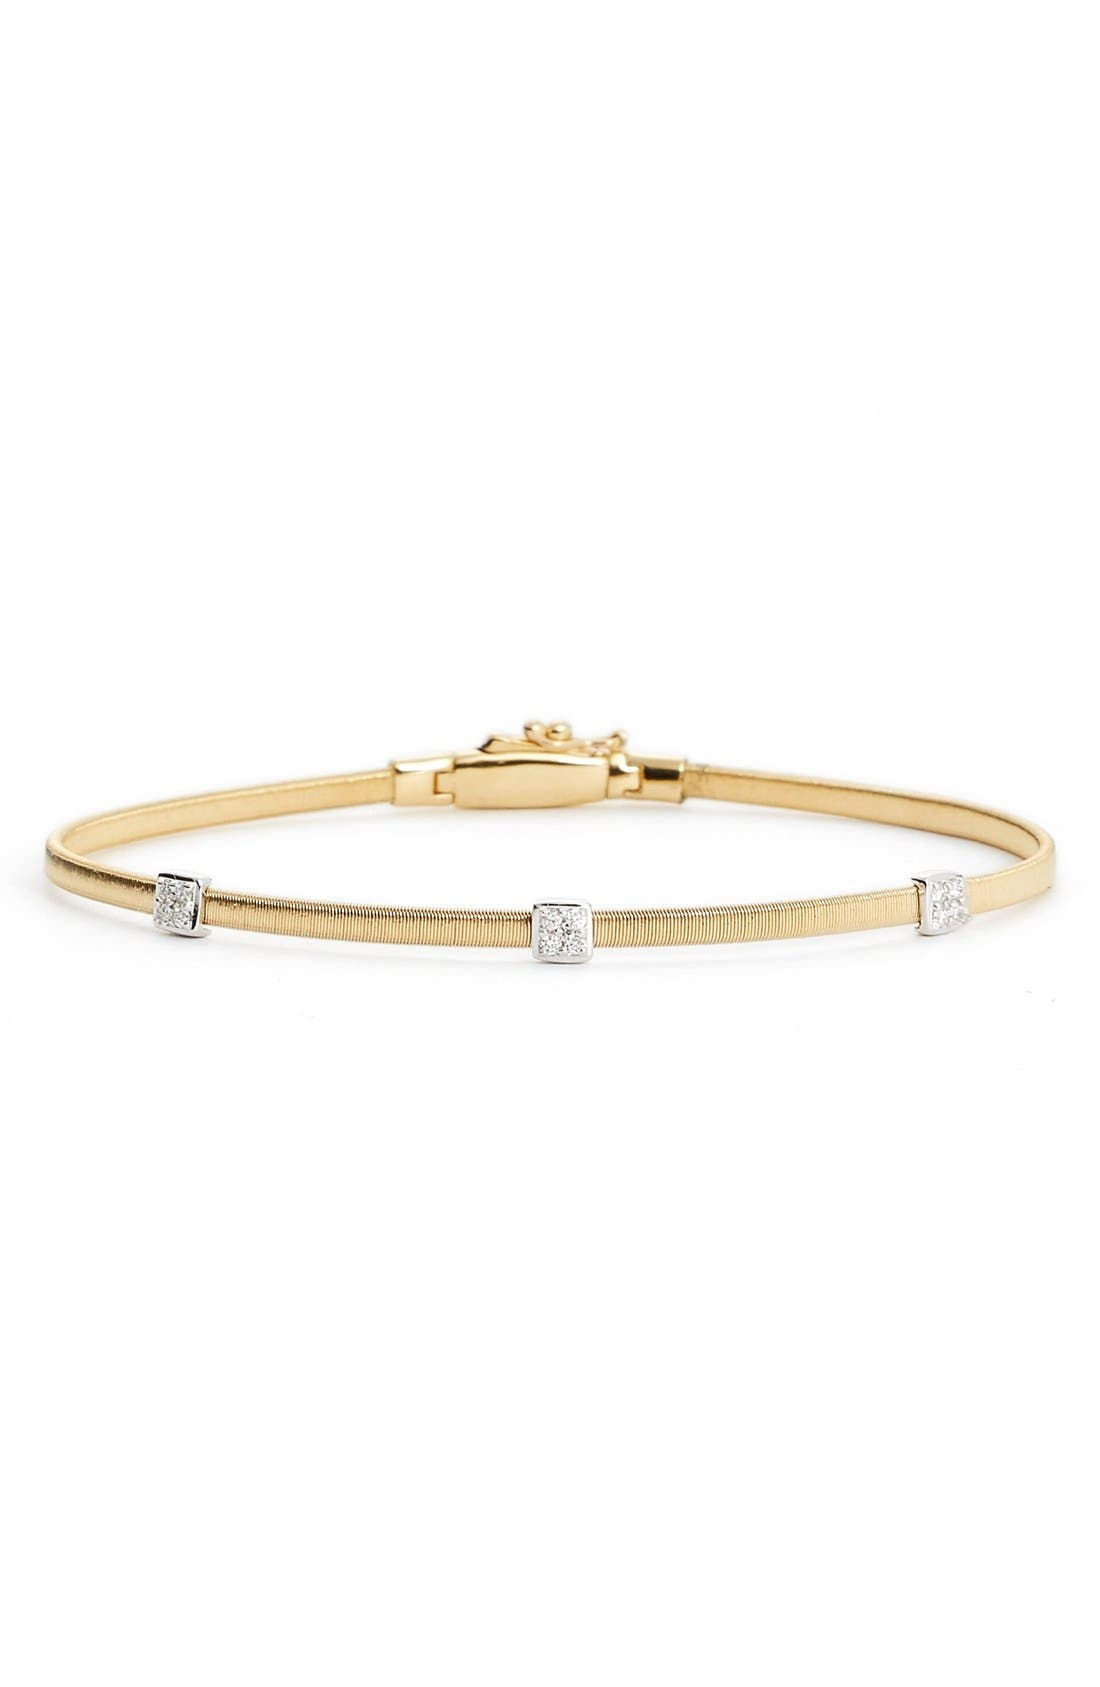 Marco Bicego Masai Small Station Diamond Bracelet